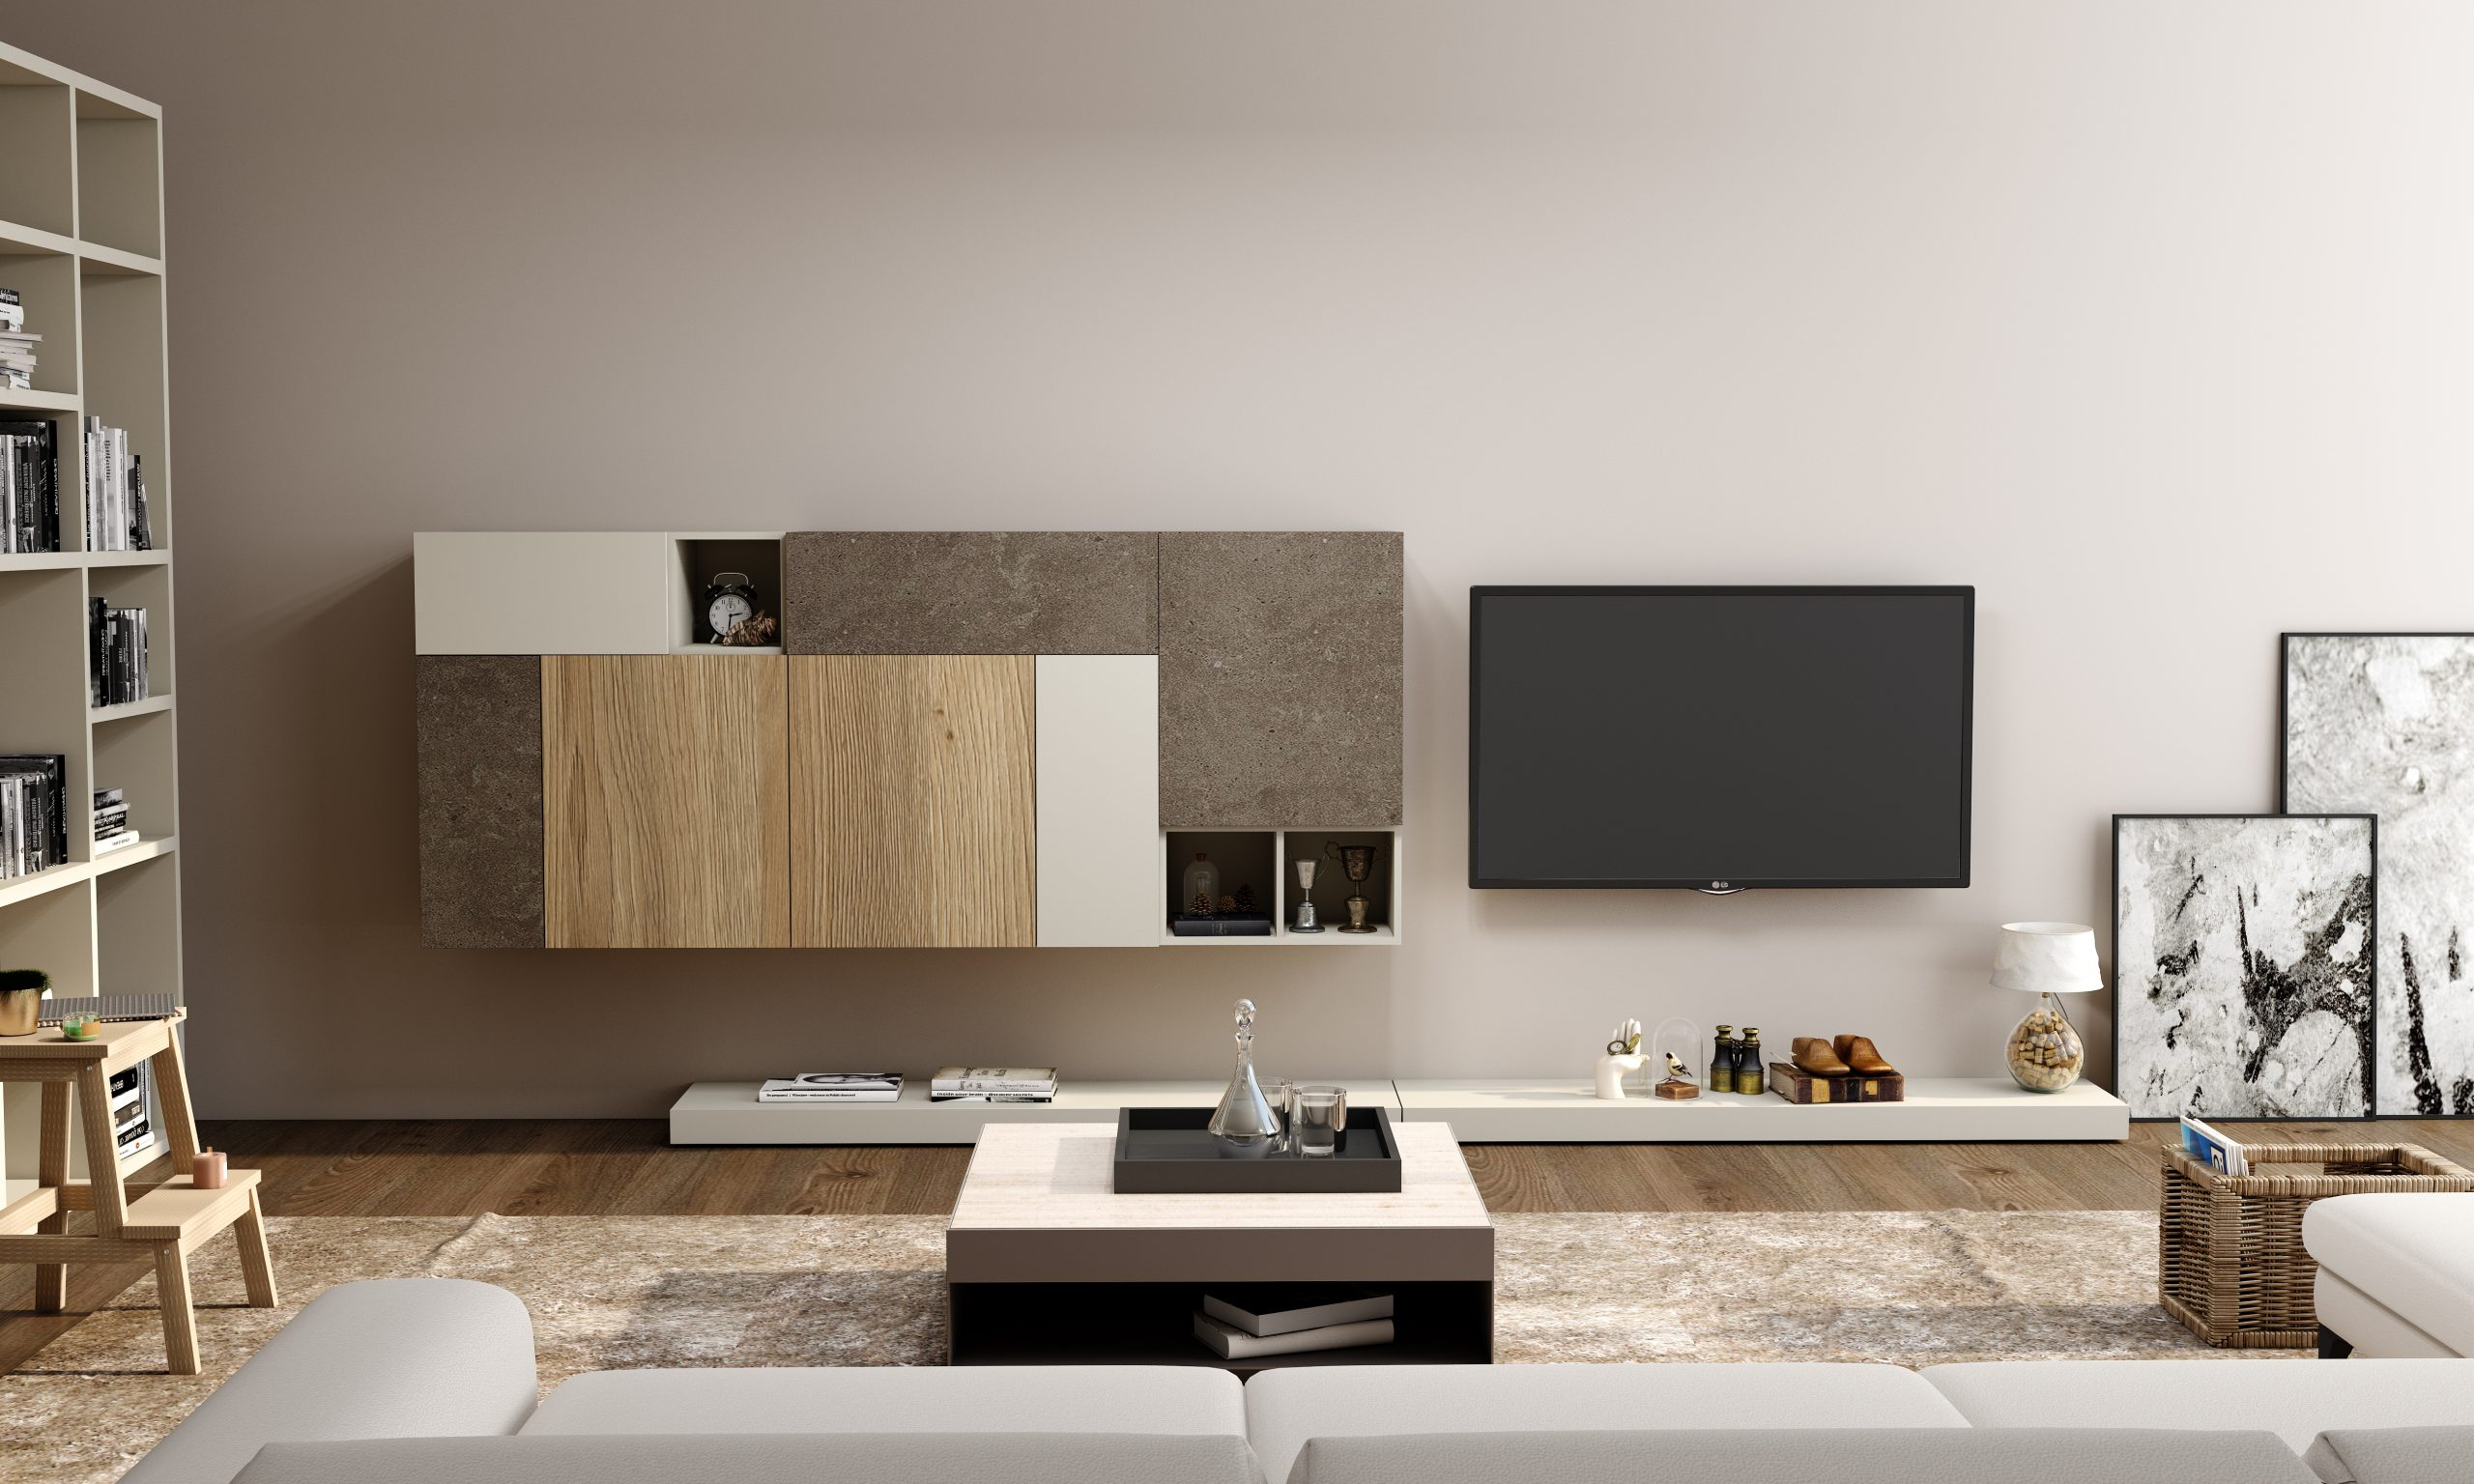 Wall TV unit with Storage in Flap ups & Open shelf units in Combination of White,Grey-Beige Gladstone Oak and Glauco Ares